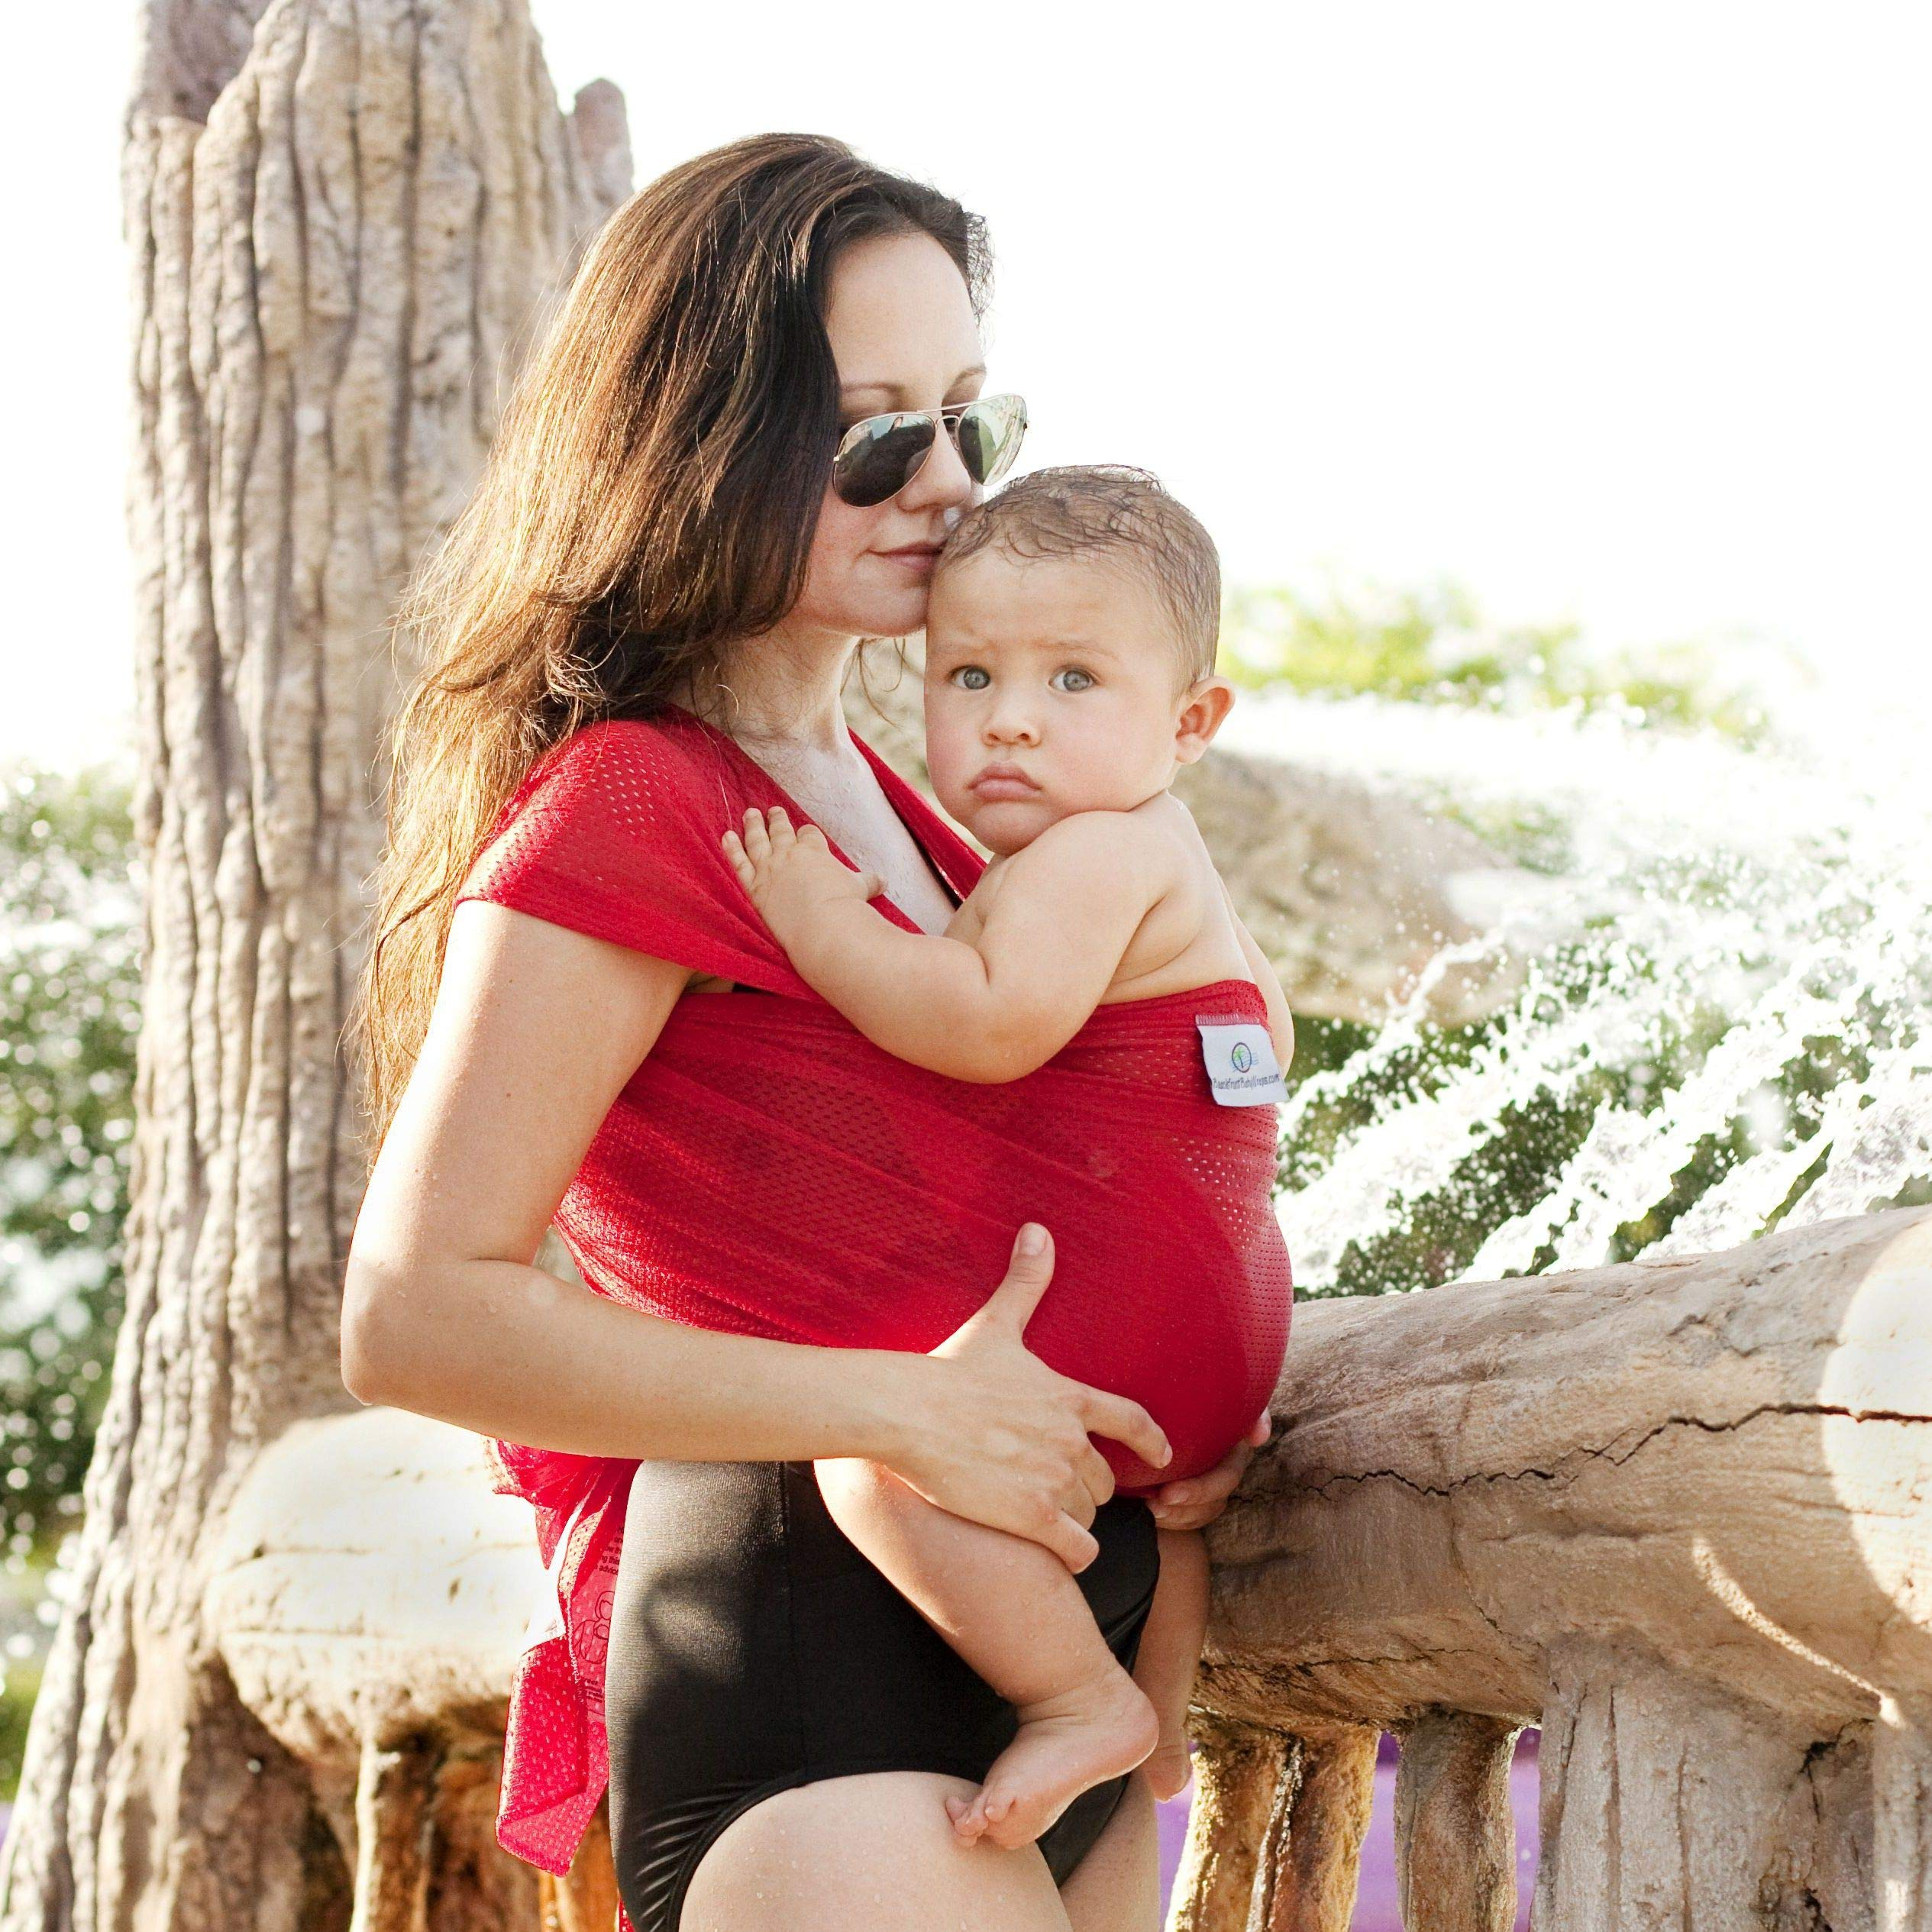 Beachfront Baby Wrap - Versatile Water & Warm Weather Baby Carrier | Made in USA with Safety Tested Fabric, CPSIA & ASTM Compliant | Lightweight, Quick Dry (Tropical Punch, One Size)